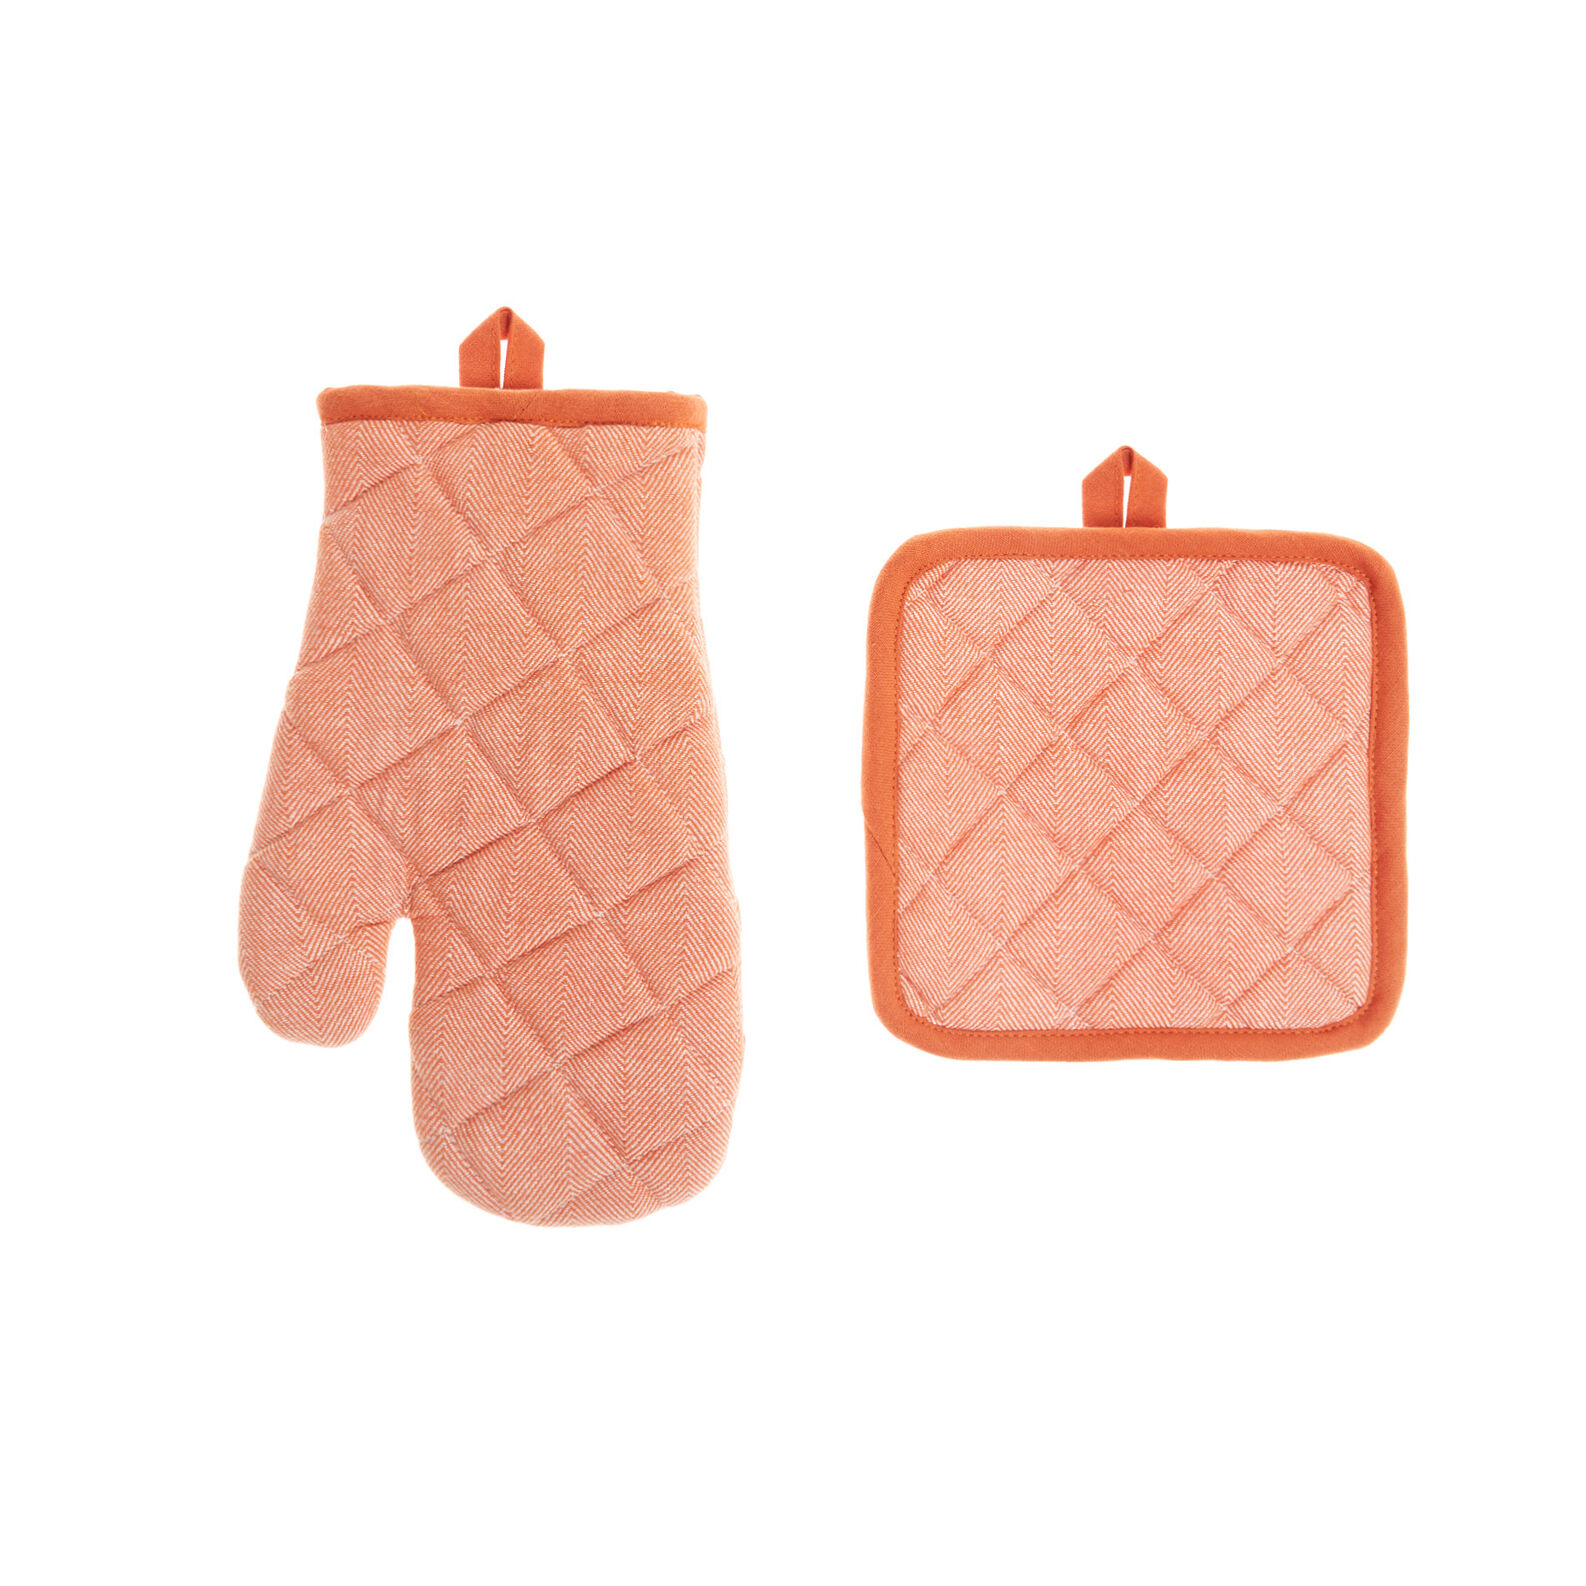 Pot holder and oven mitt set in 100% cotton with yarn-dyed design